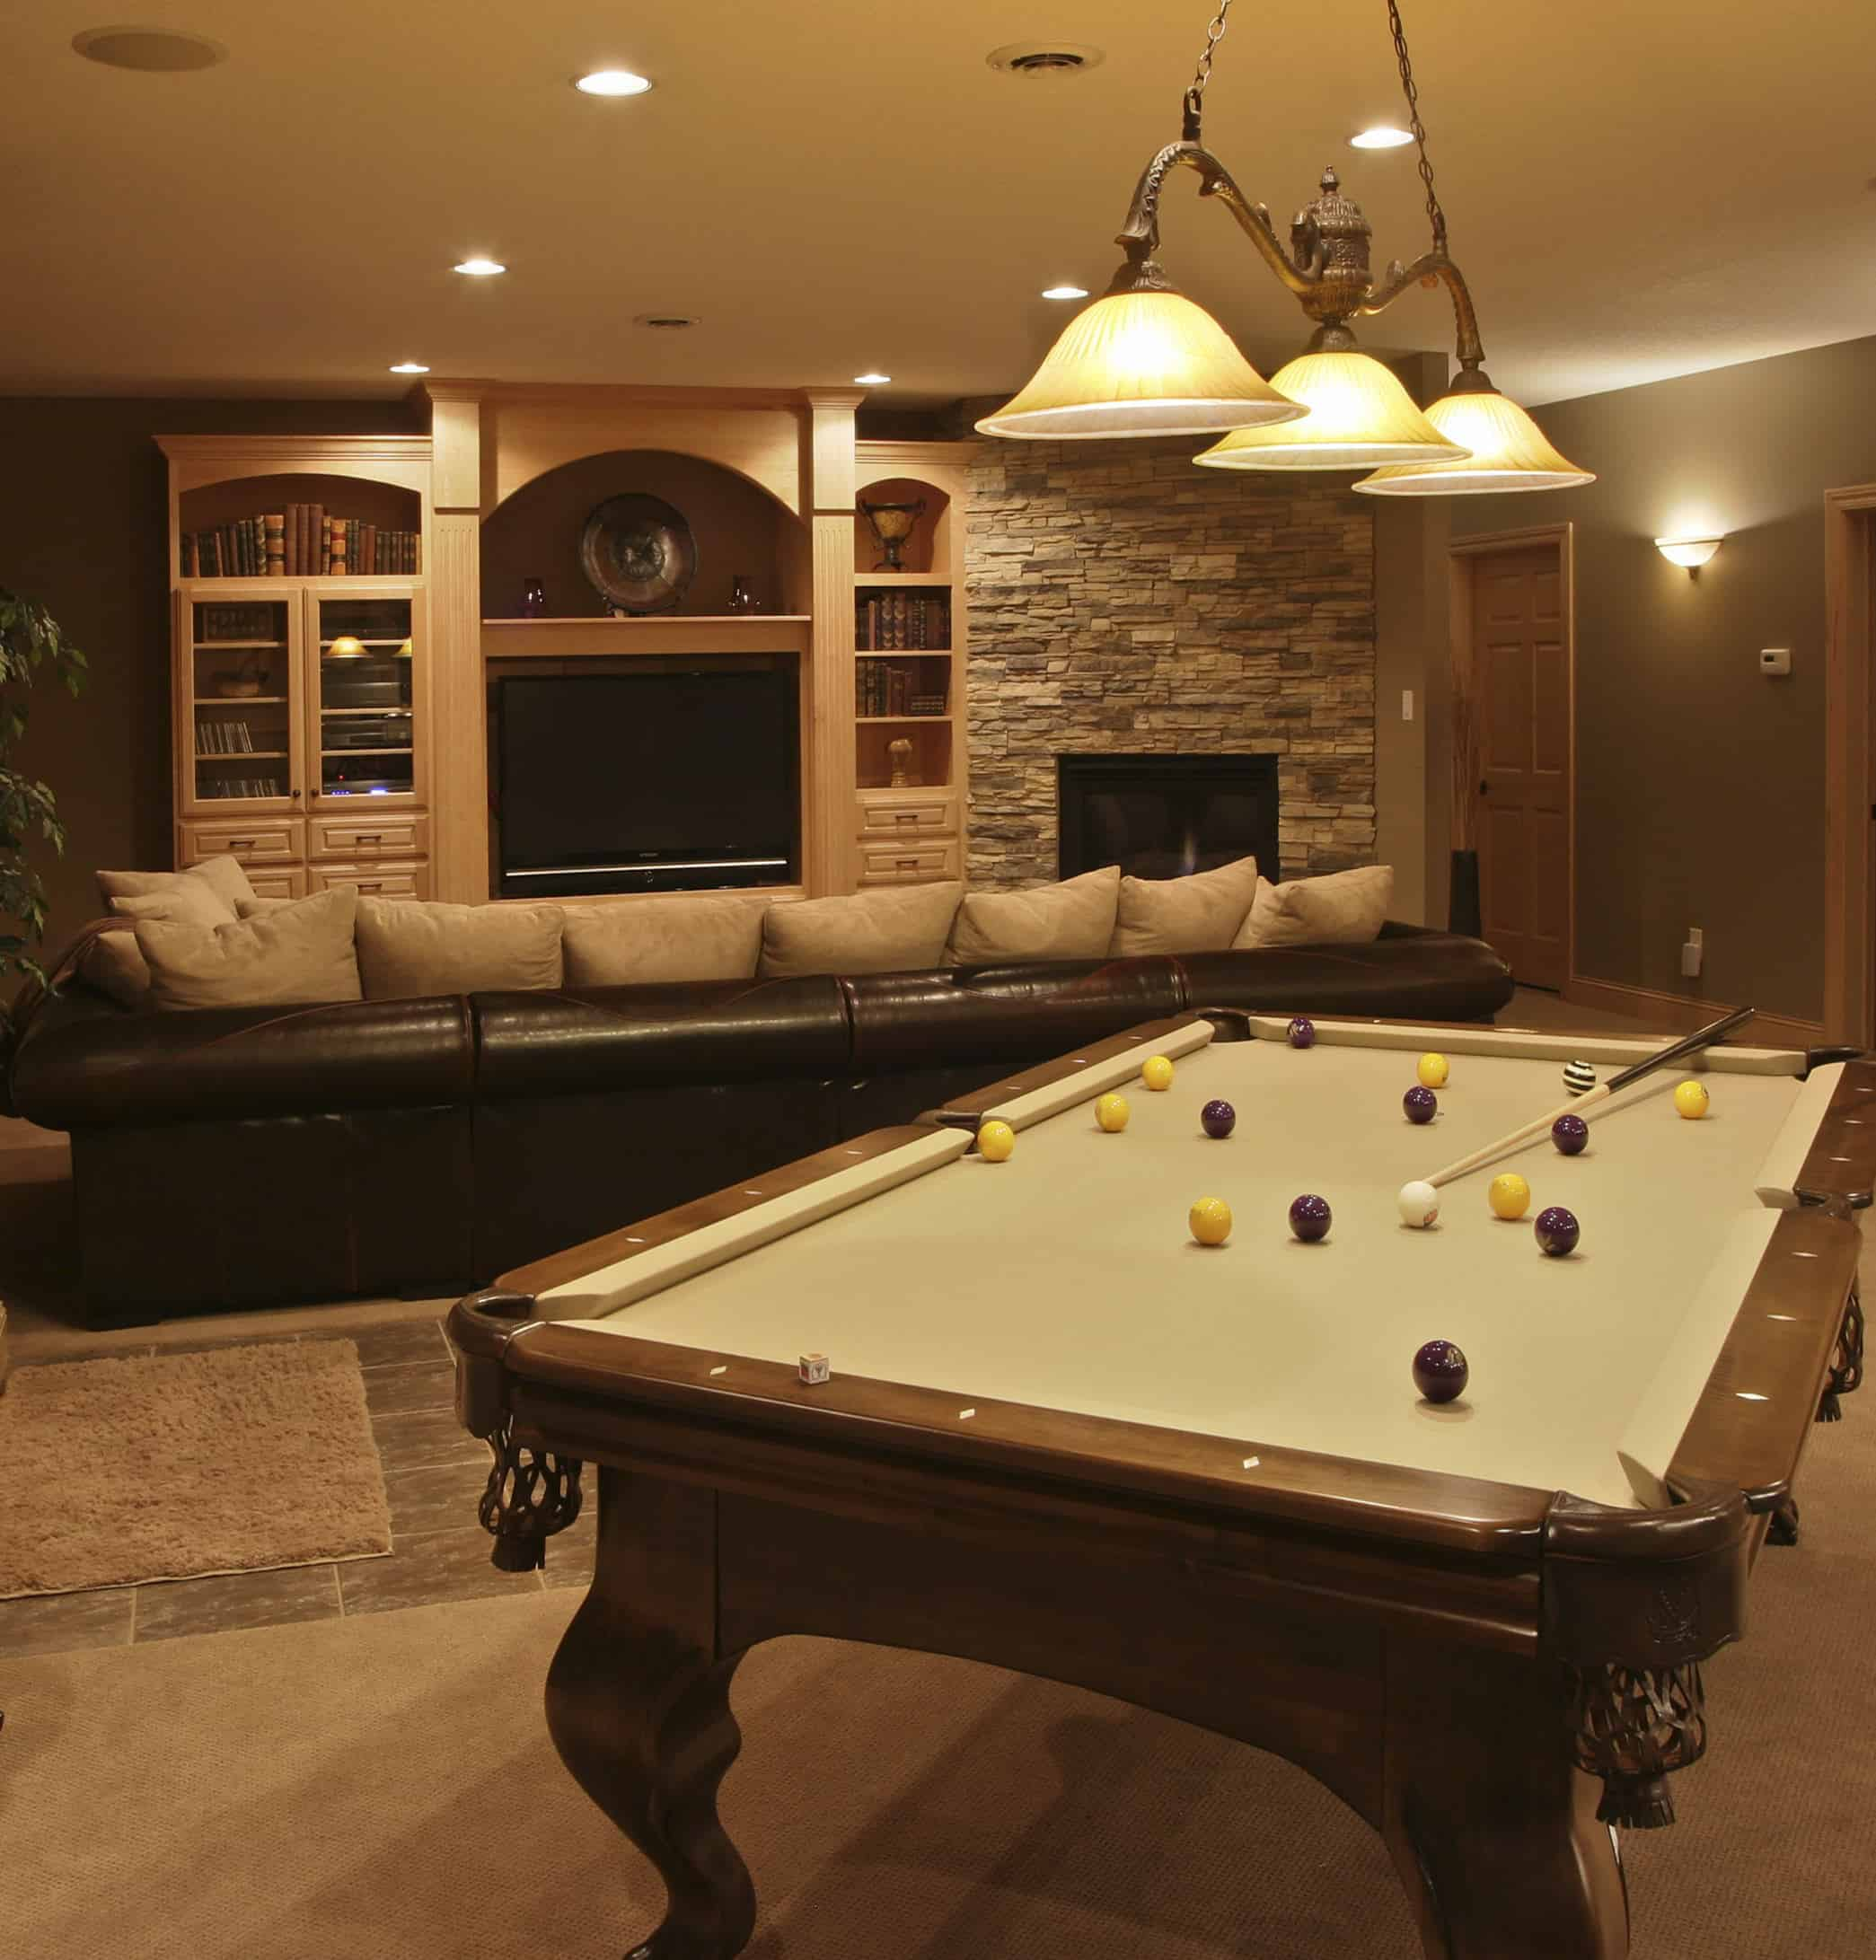 A close up look at this man cave's stylish billiards pool with white cloth and is lighted by charming pendant lighting.